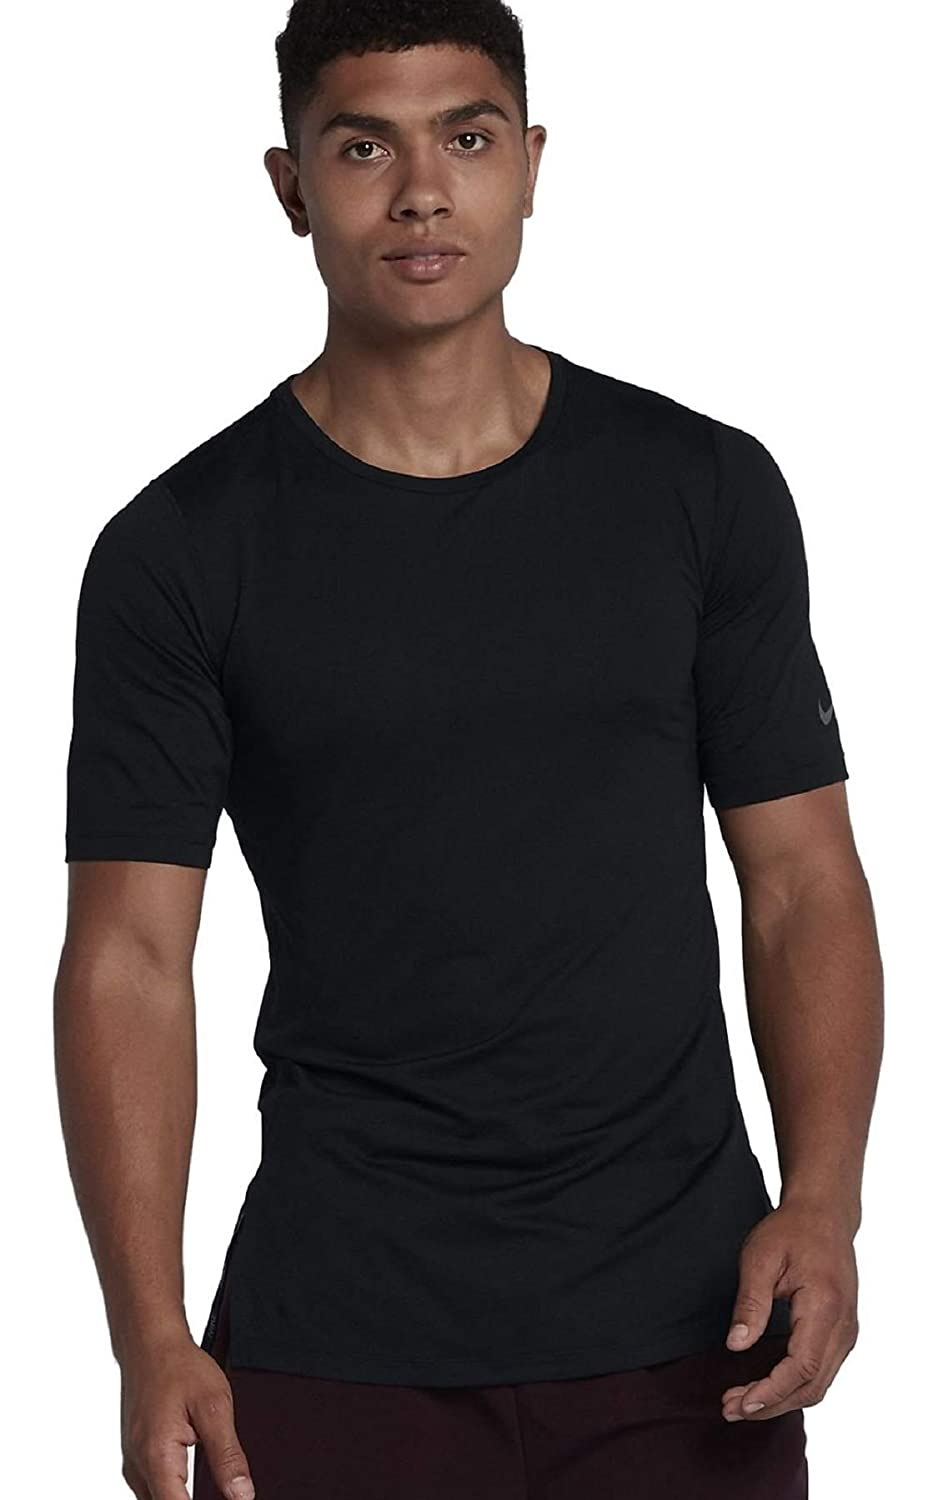 the latest 8d420 b5fb4 Amazon.com  Nike Men s Modern Utility Fitted Training T-Shirt  Sports    Outdoors